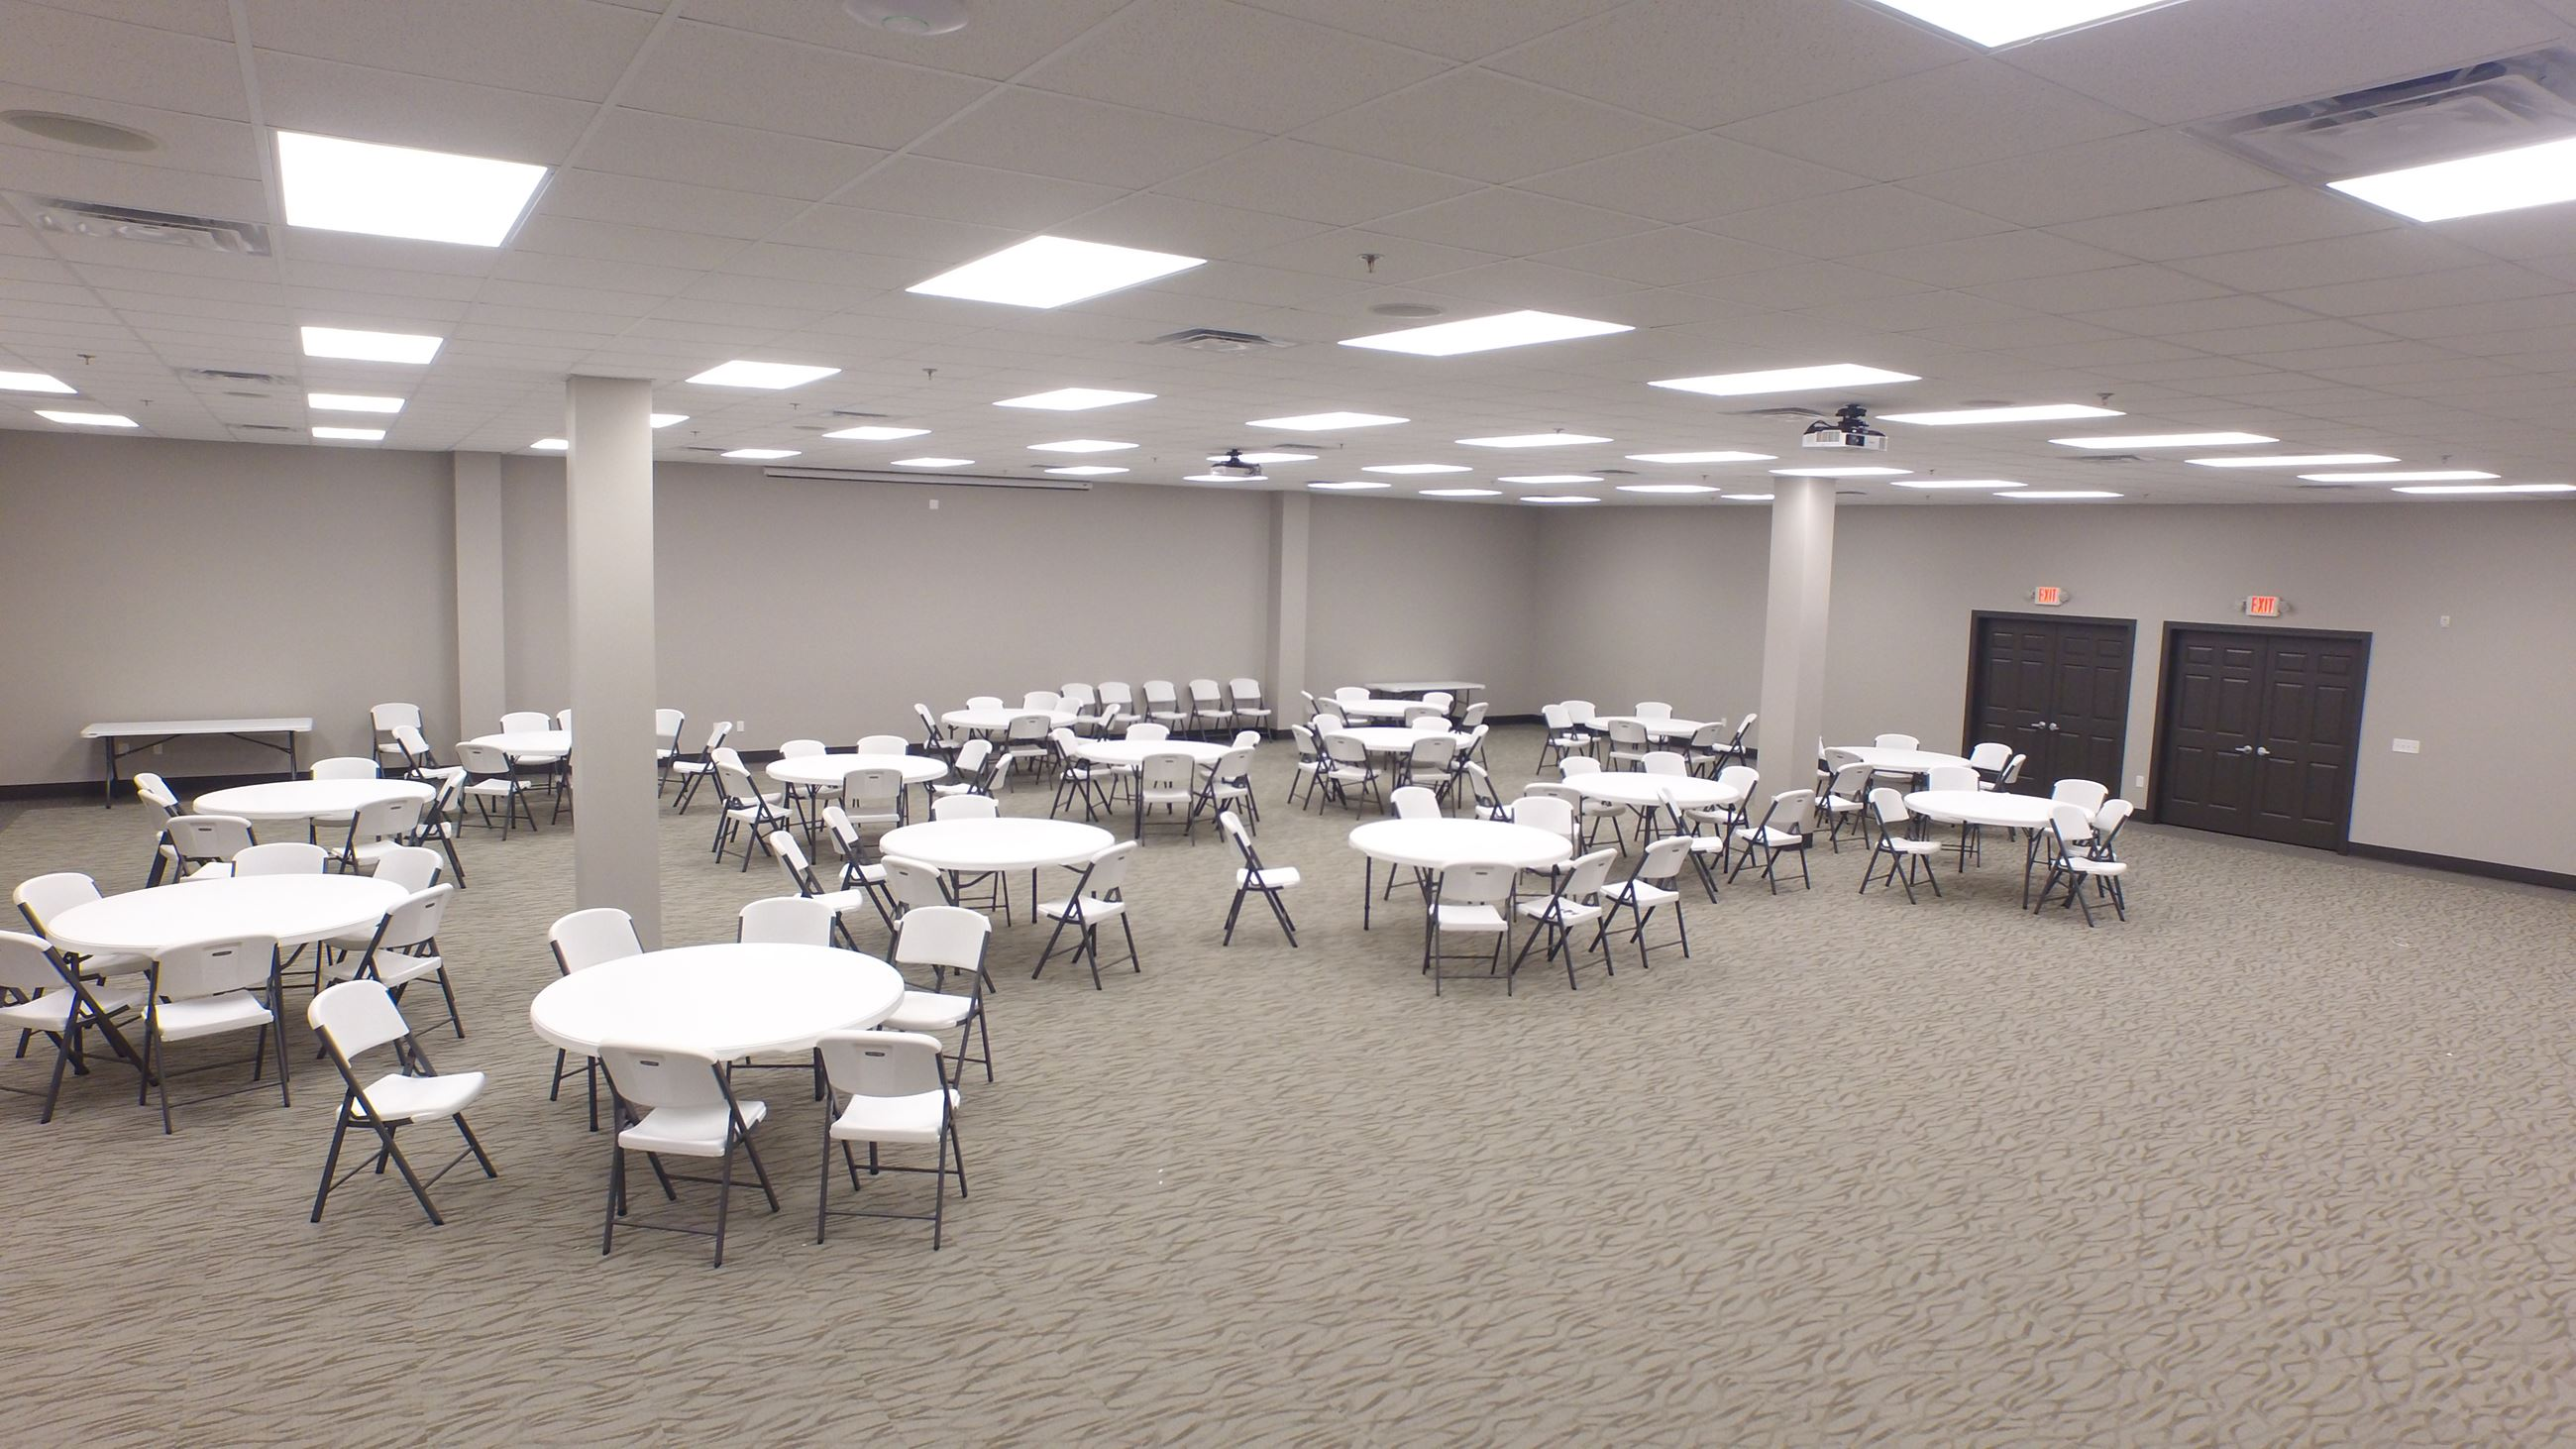 A view of the Gathering Hall with tables and chairs set up.